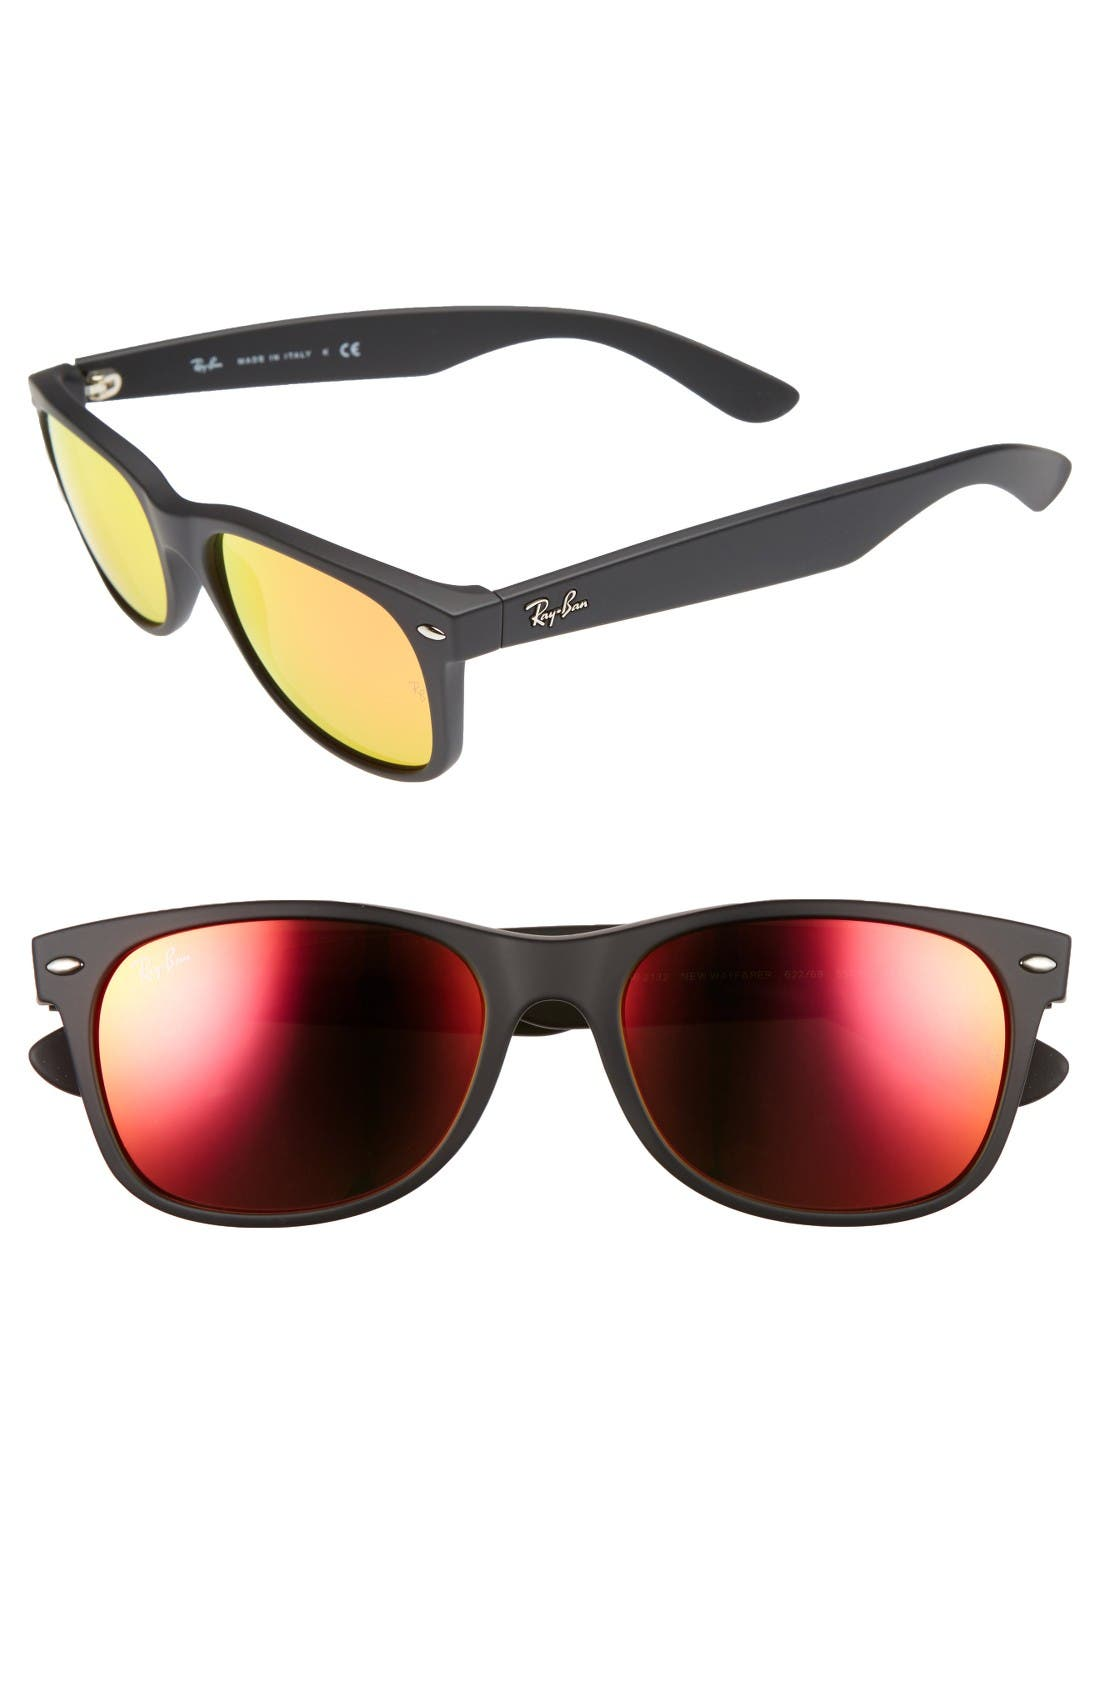 Main Image - Ray-Ban 2132 55mm Sunglasses